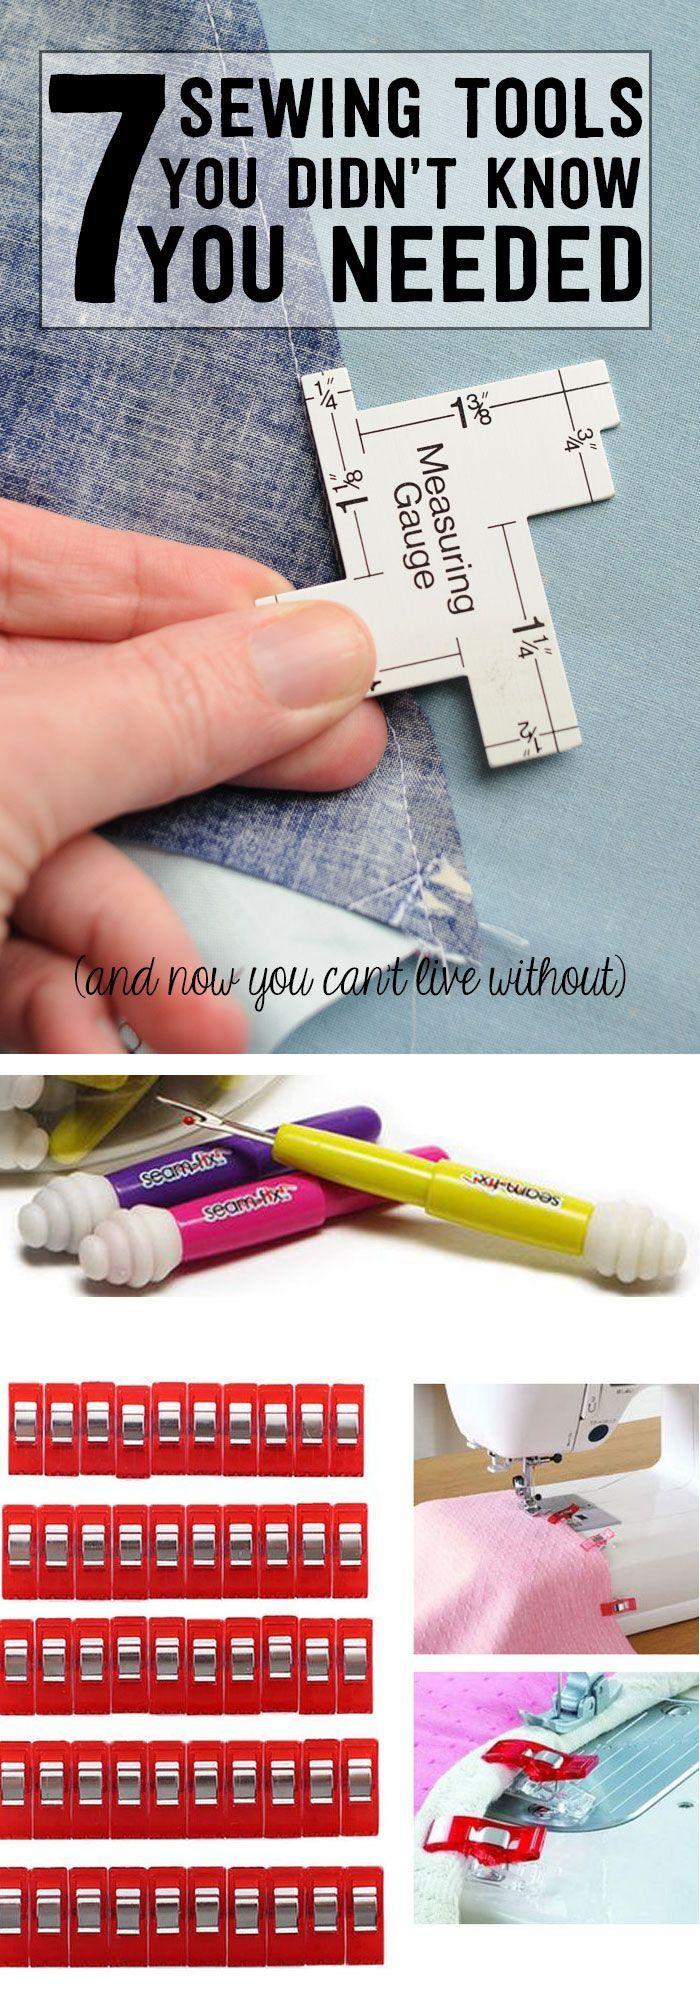 7 Must Have Sewing Tools You Didn't Know You Needed